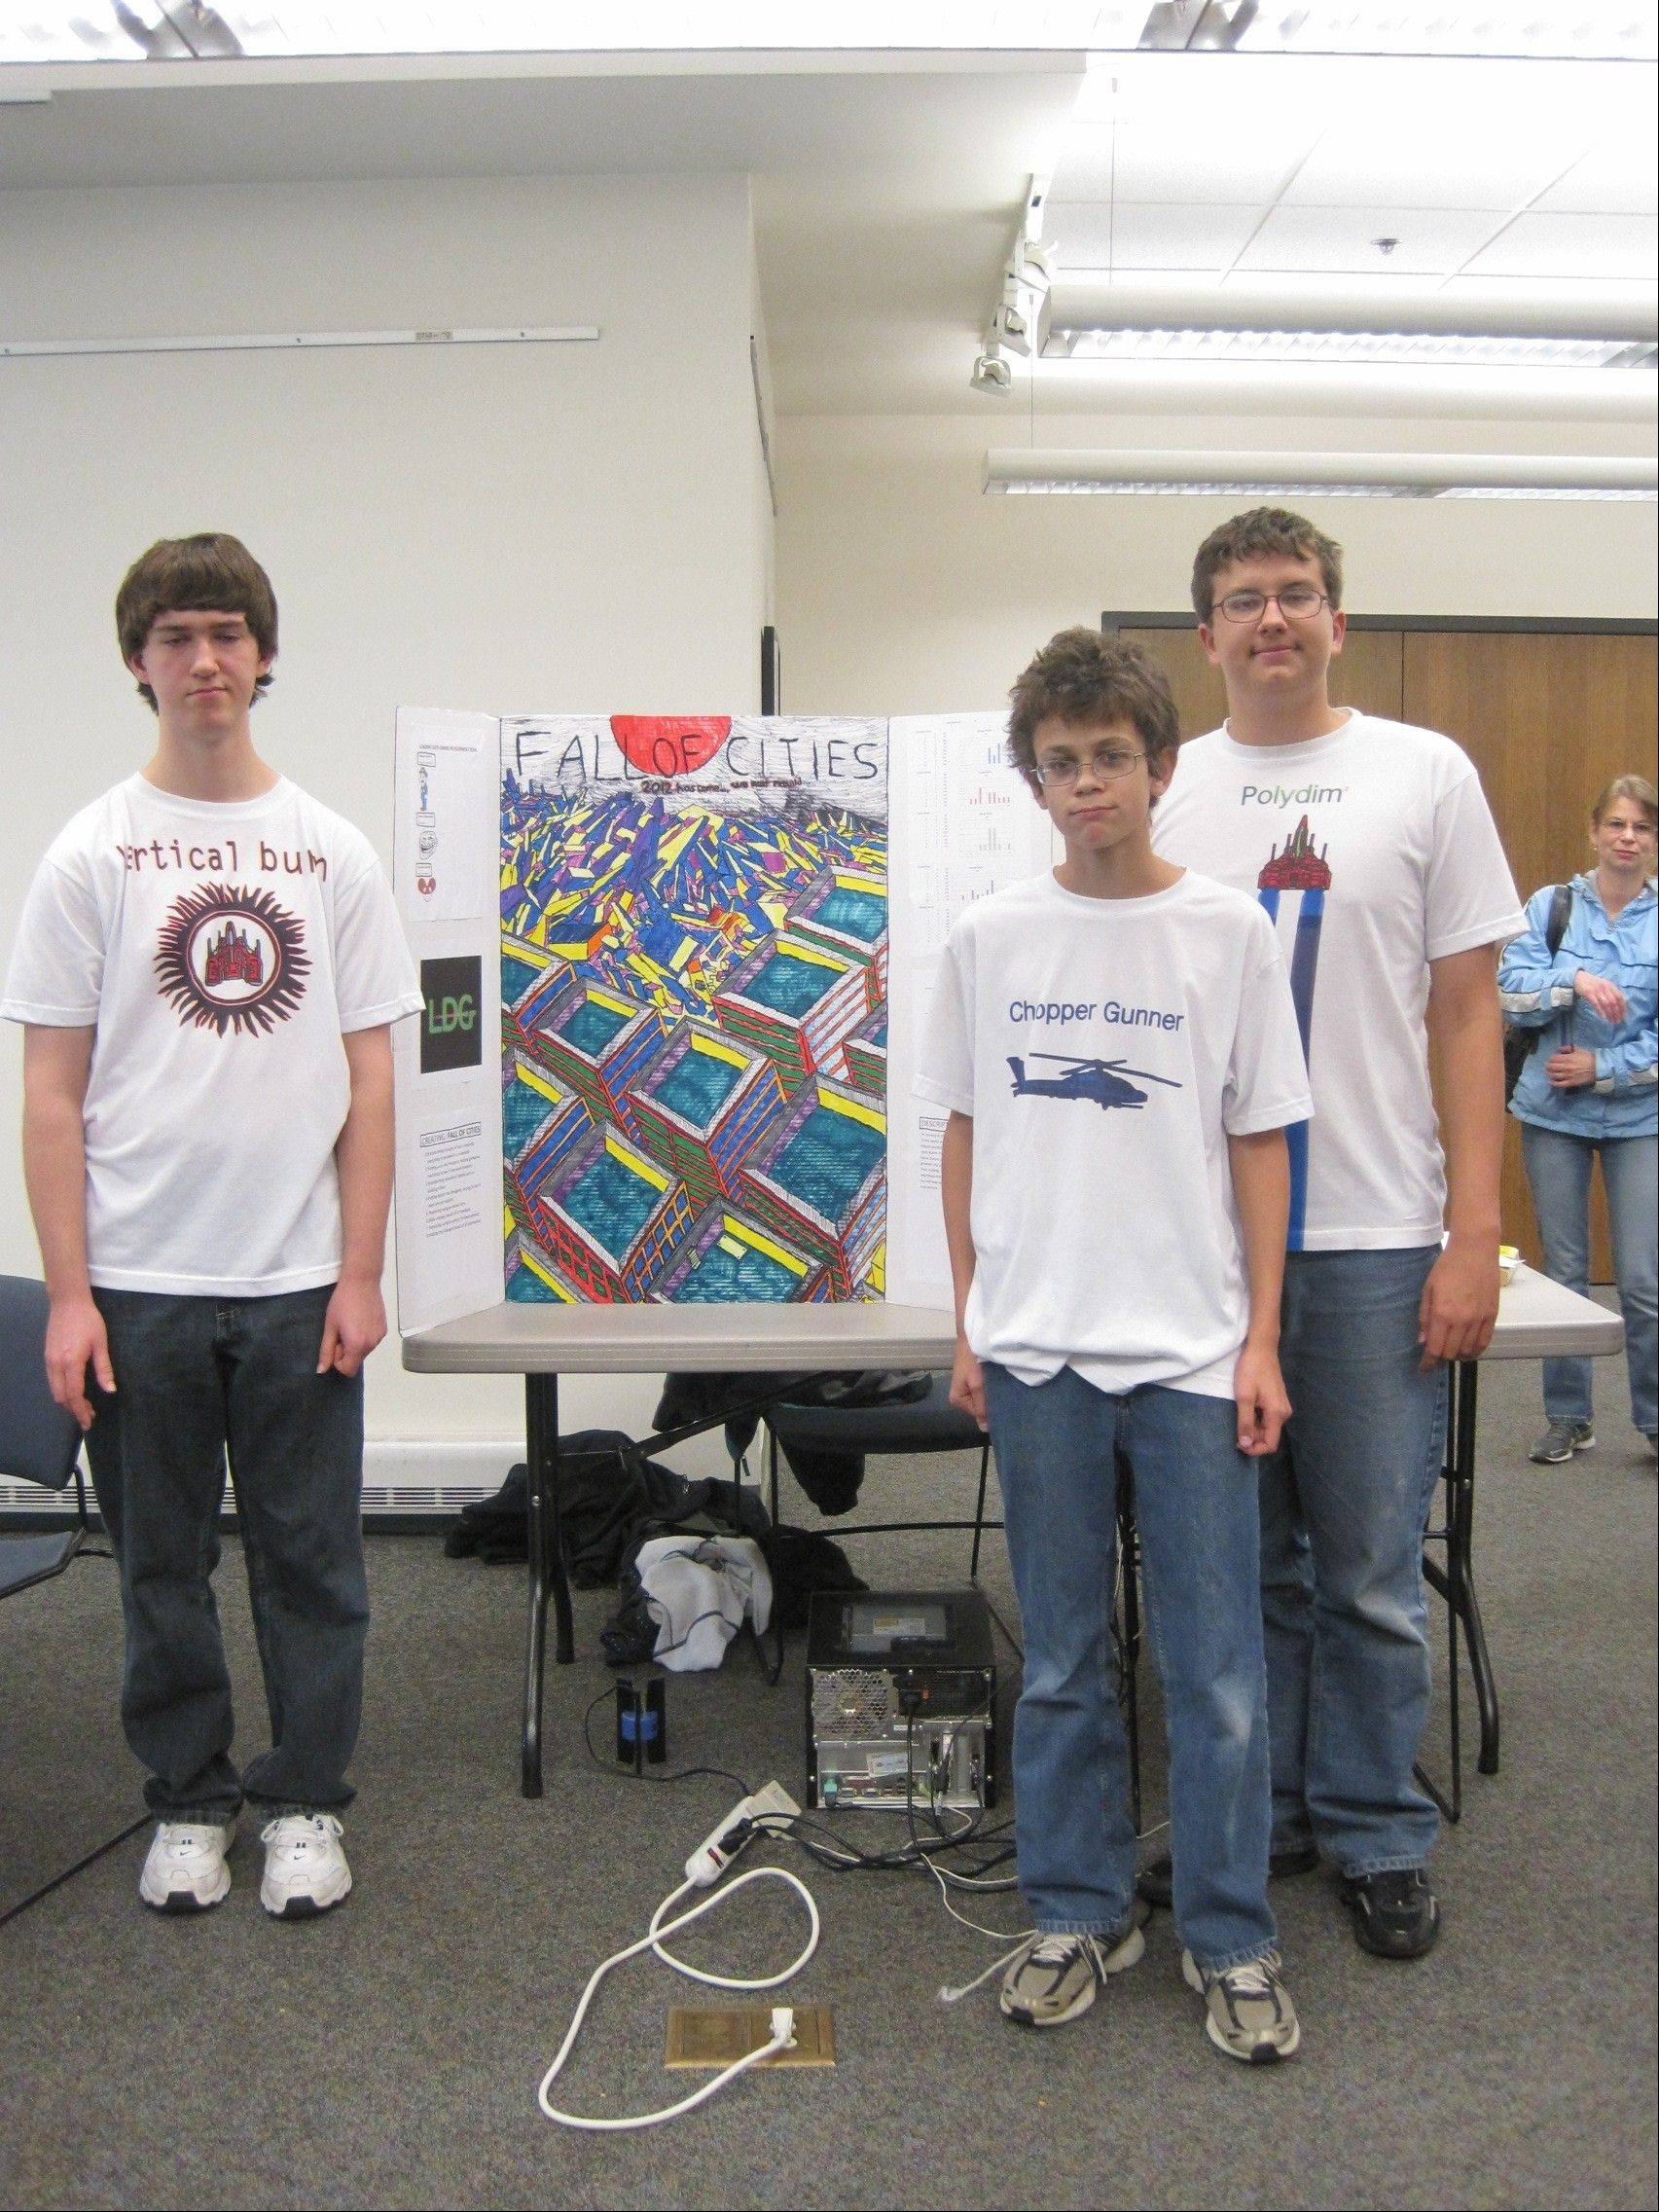 "Winner of the Indian Trails Public Library's 2011 Operation Game Creation competition was the team ""Loading Data Games."" Team members, from left, are Brendan Liokumovich, Sergey Papushin and Dmitry Lahucik. Their game, ""Fall of Cities,"" beat out six other teams that submitted five board games and a computer game."